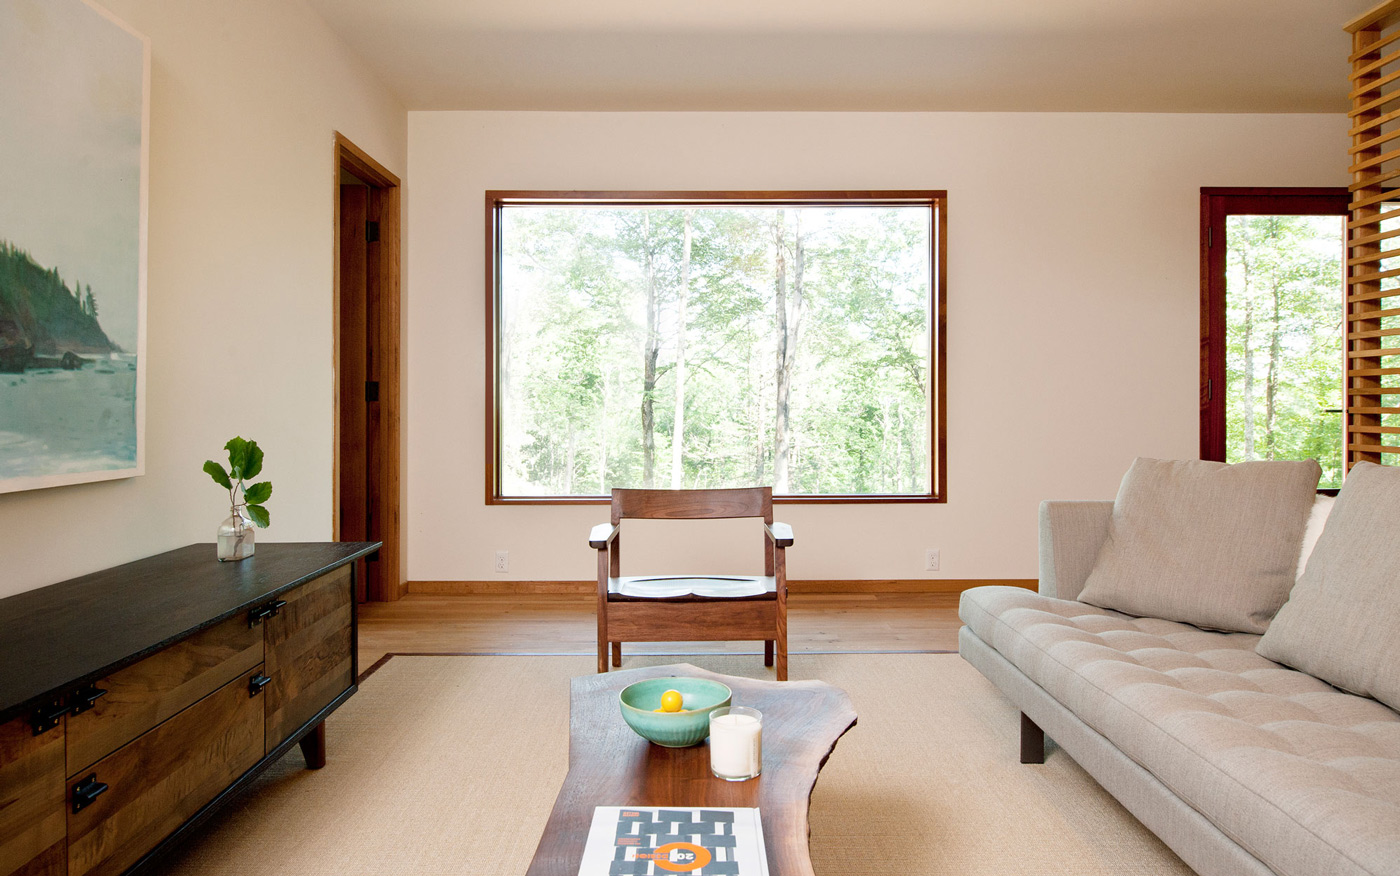 Large Window, Table, Chair, Sofa, Living Space, Wood and Glass House in Kerhonkson